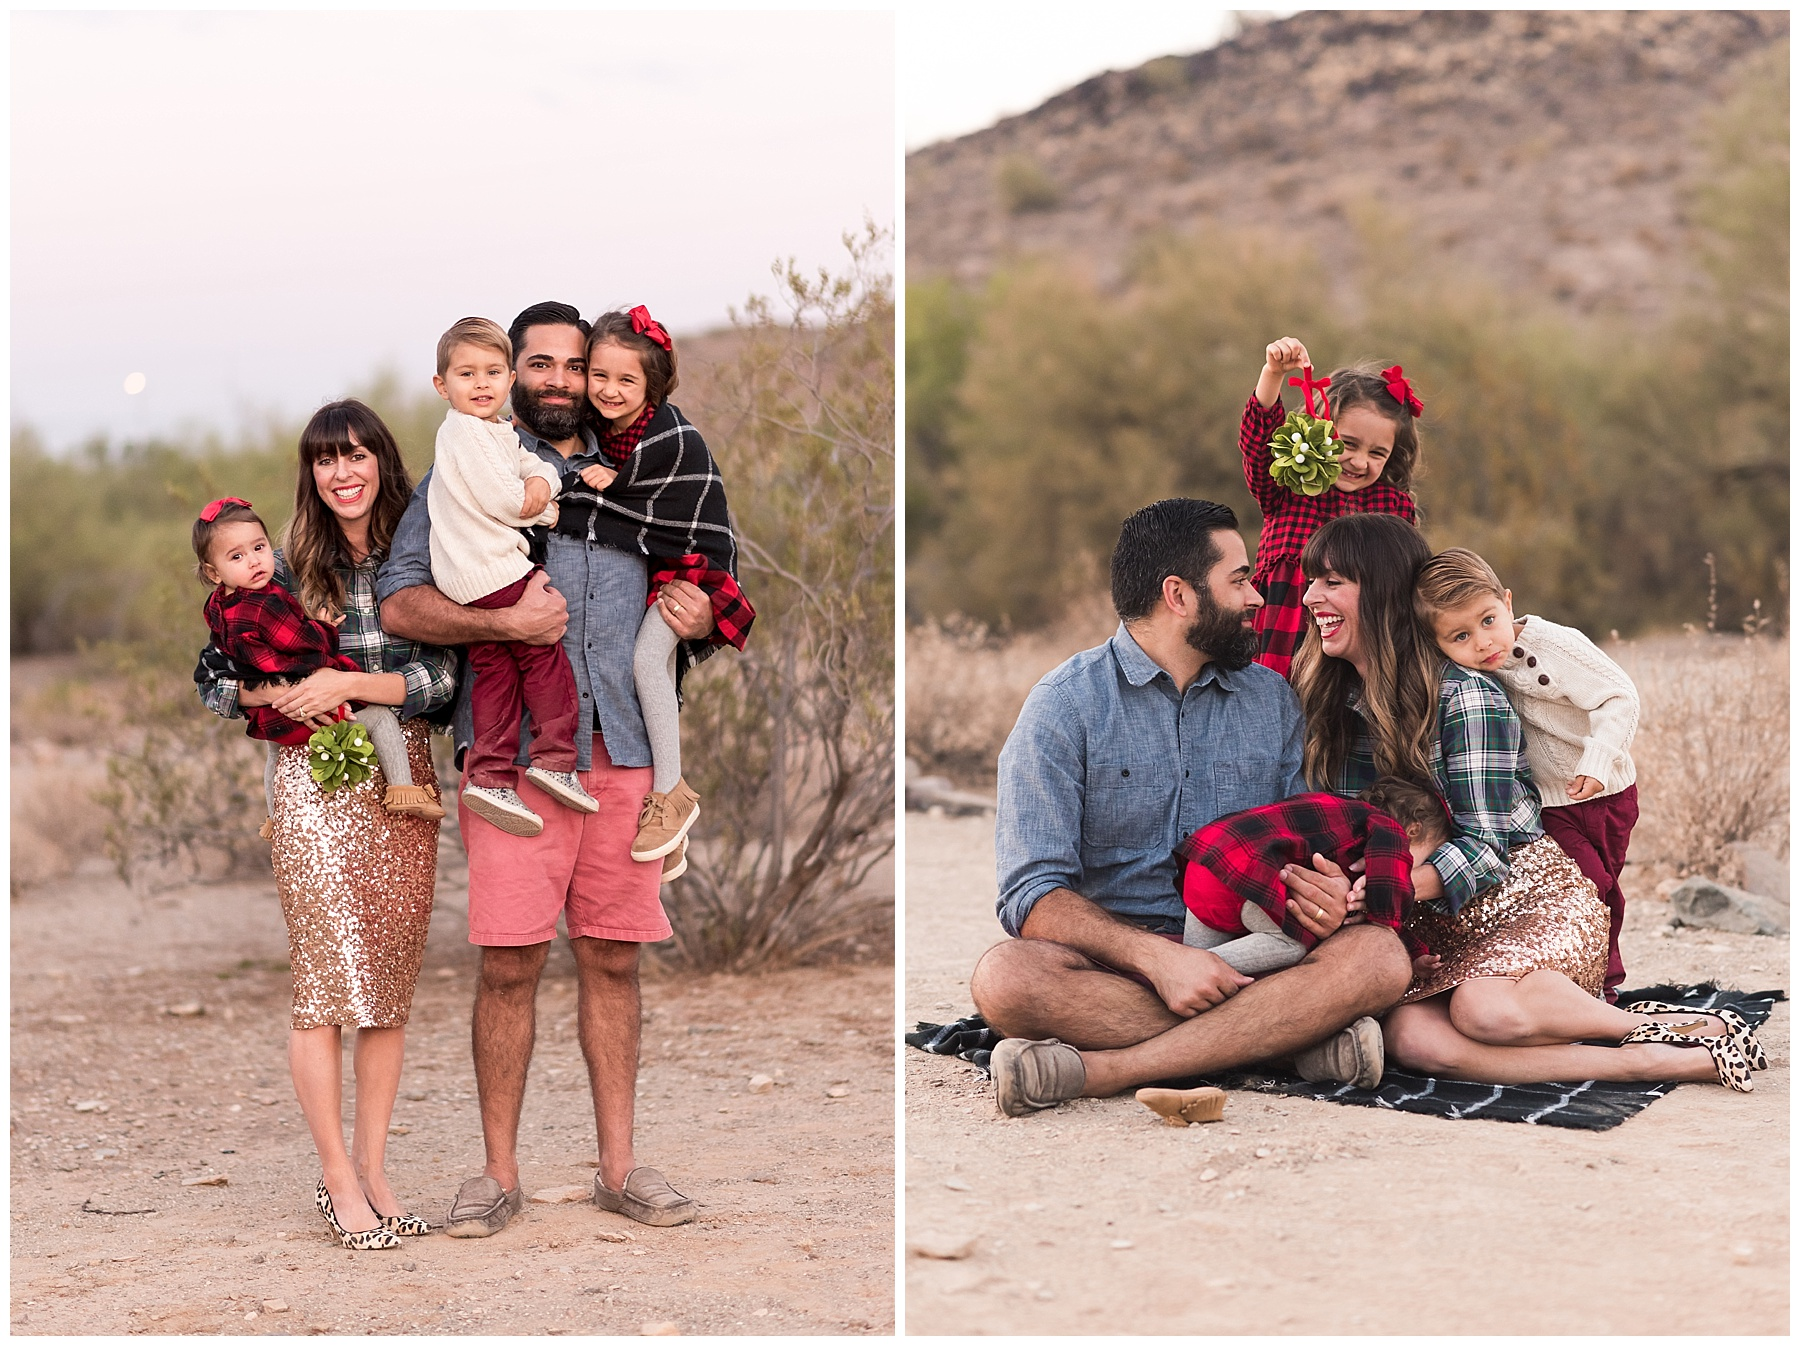 Fall Desert Family Photo session with SweetLife Photography